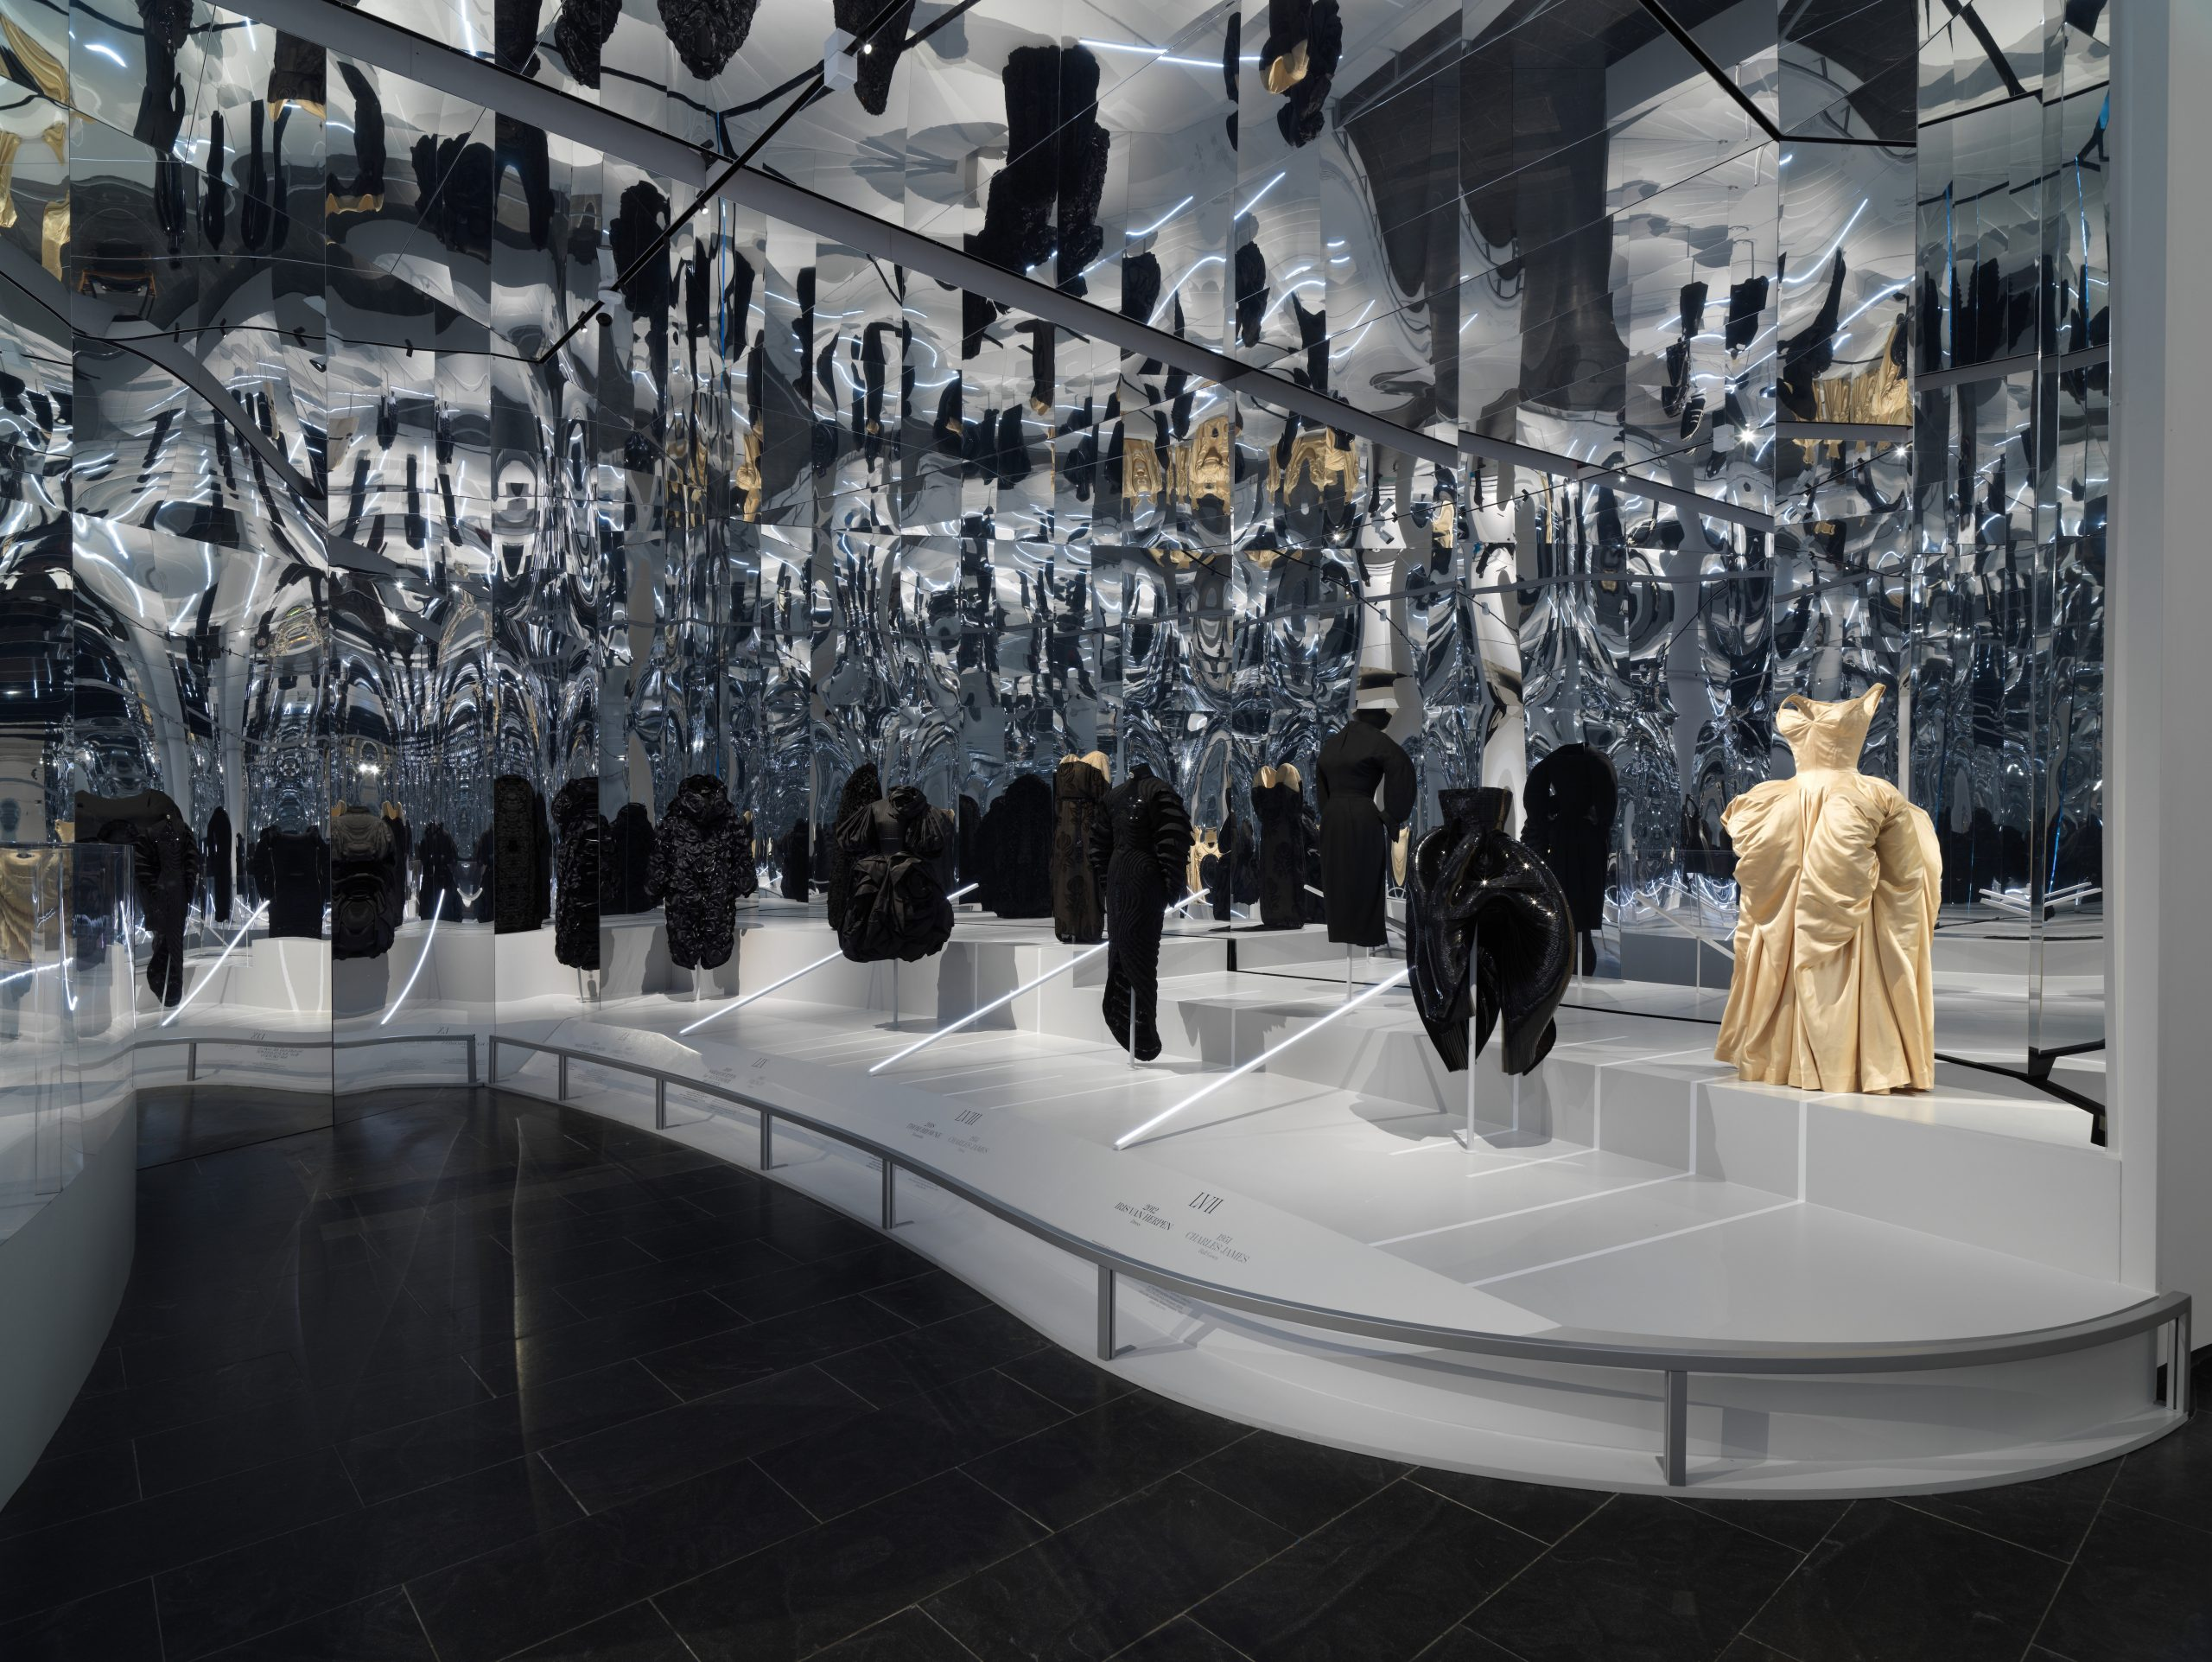 """Review of the MET's """"About Time: Fashion and Duration"""" Exhibit"""